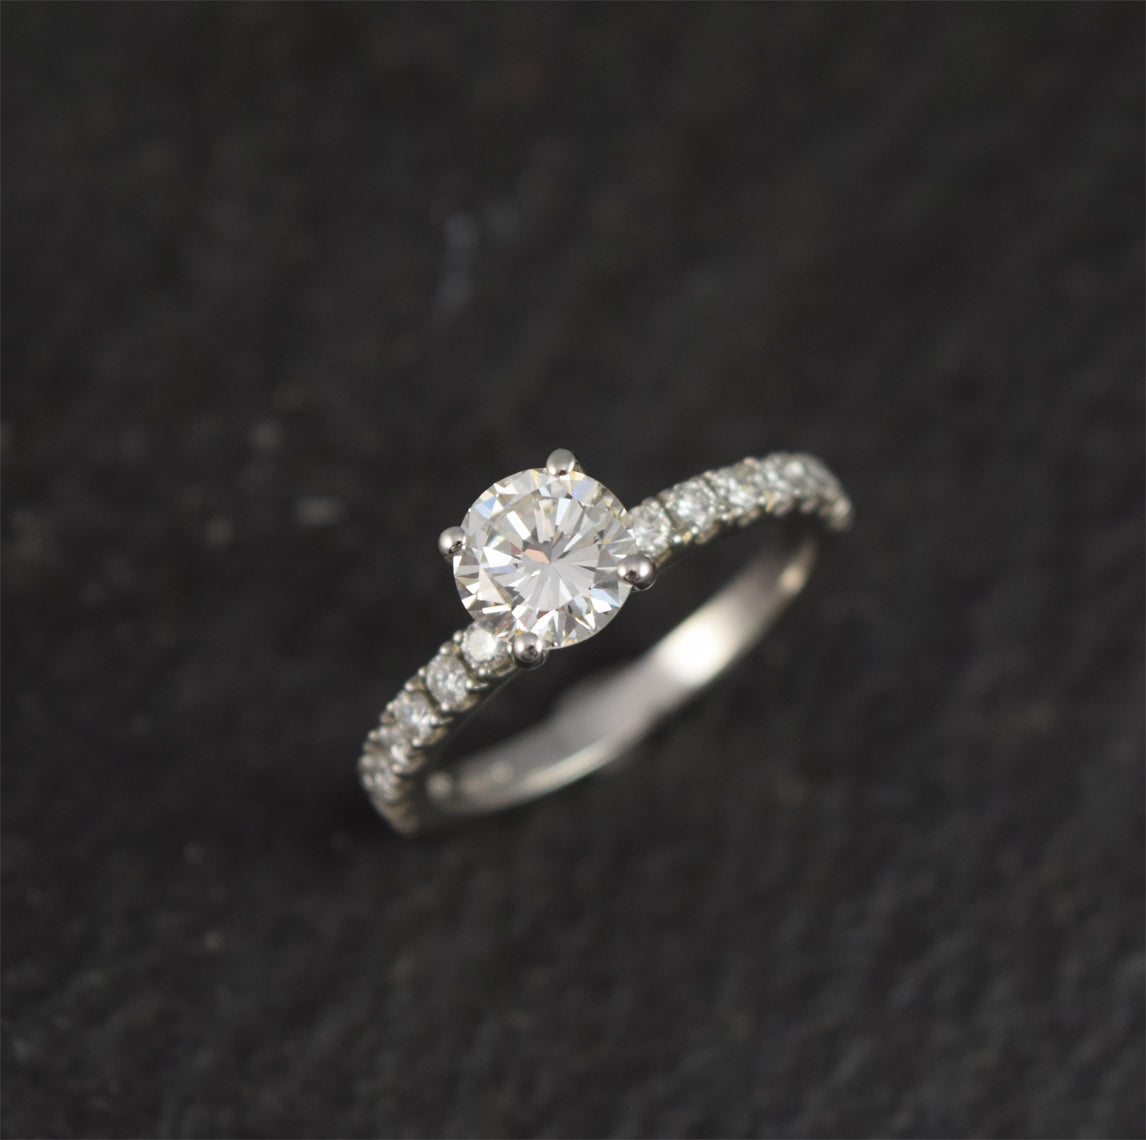 Bespoke Diamond Engagement Ring